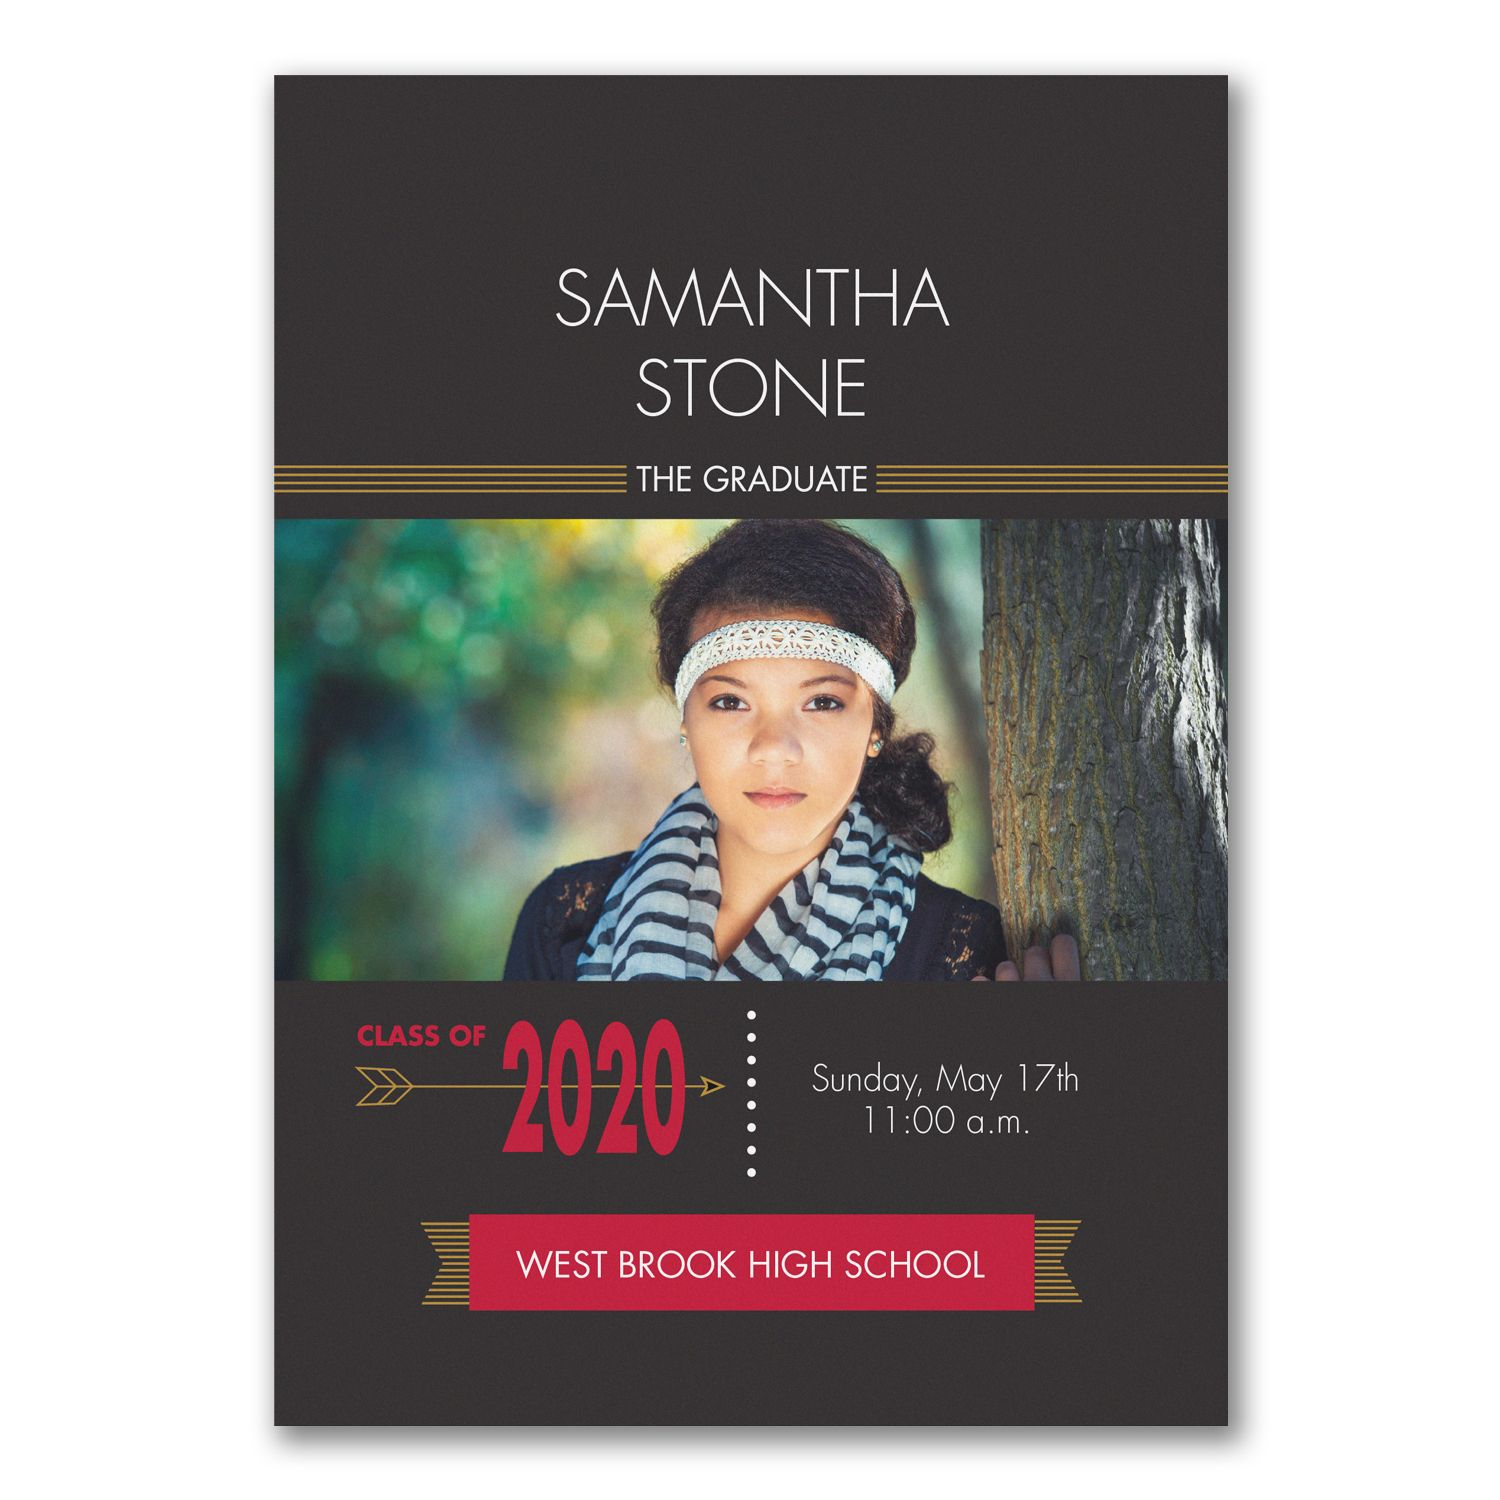 sample open house graduation party invitations%0A Explore Graduation Invitations and more